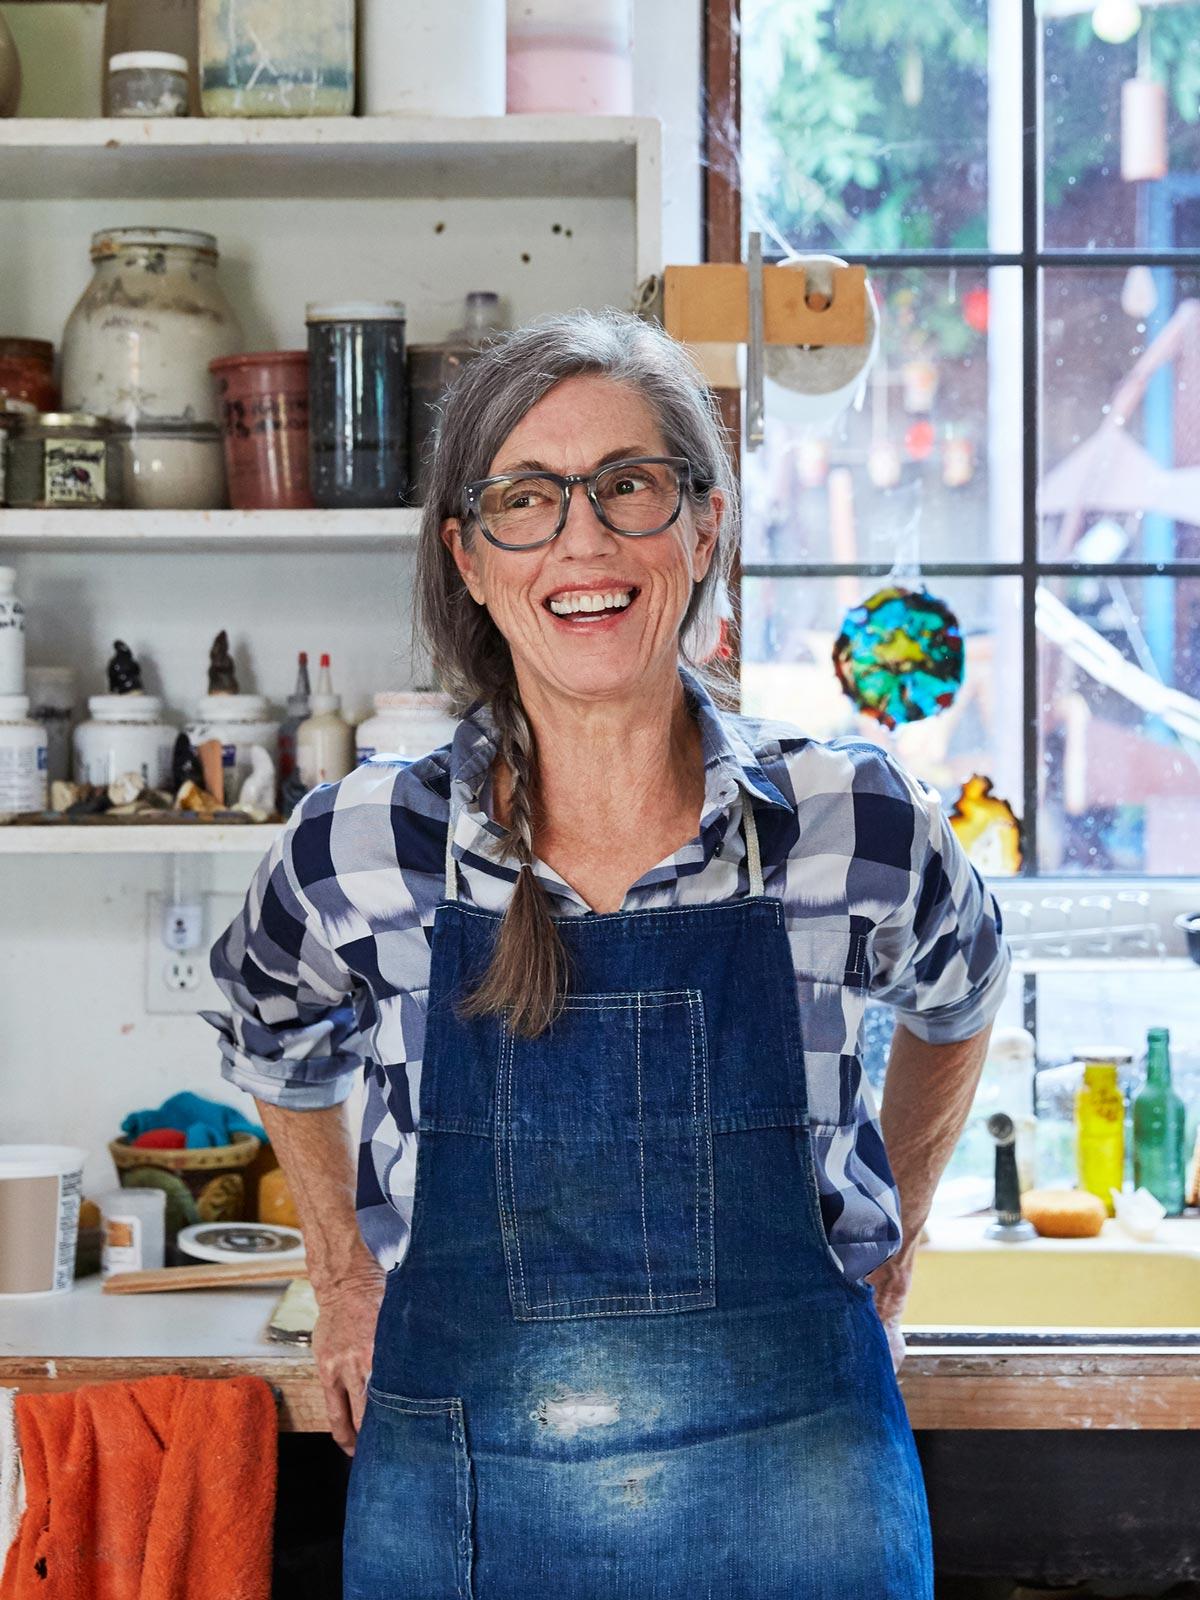 Vertical - Female artist with gray side braid and glasses in a blue apron sitting in front of her studio workbench